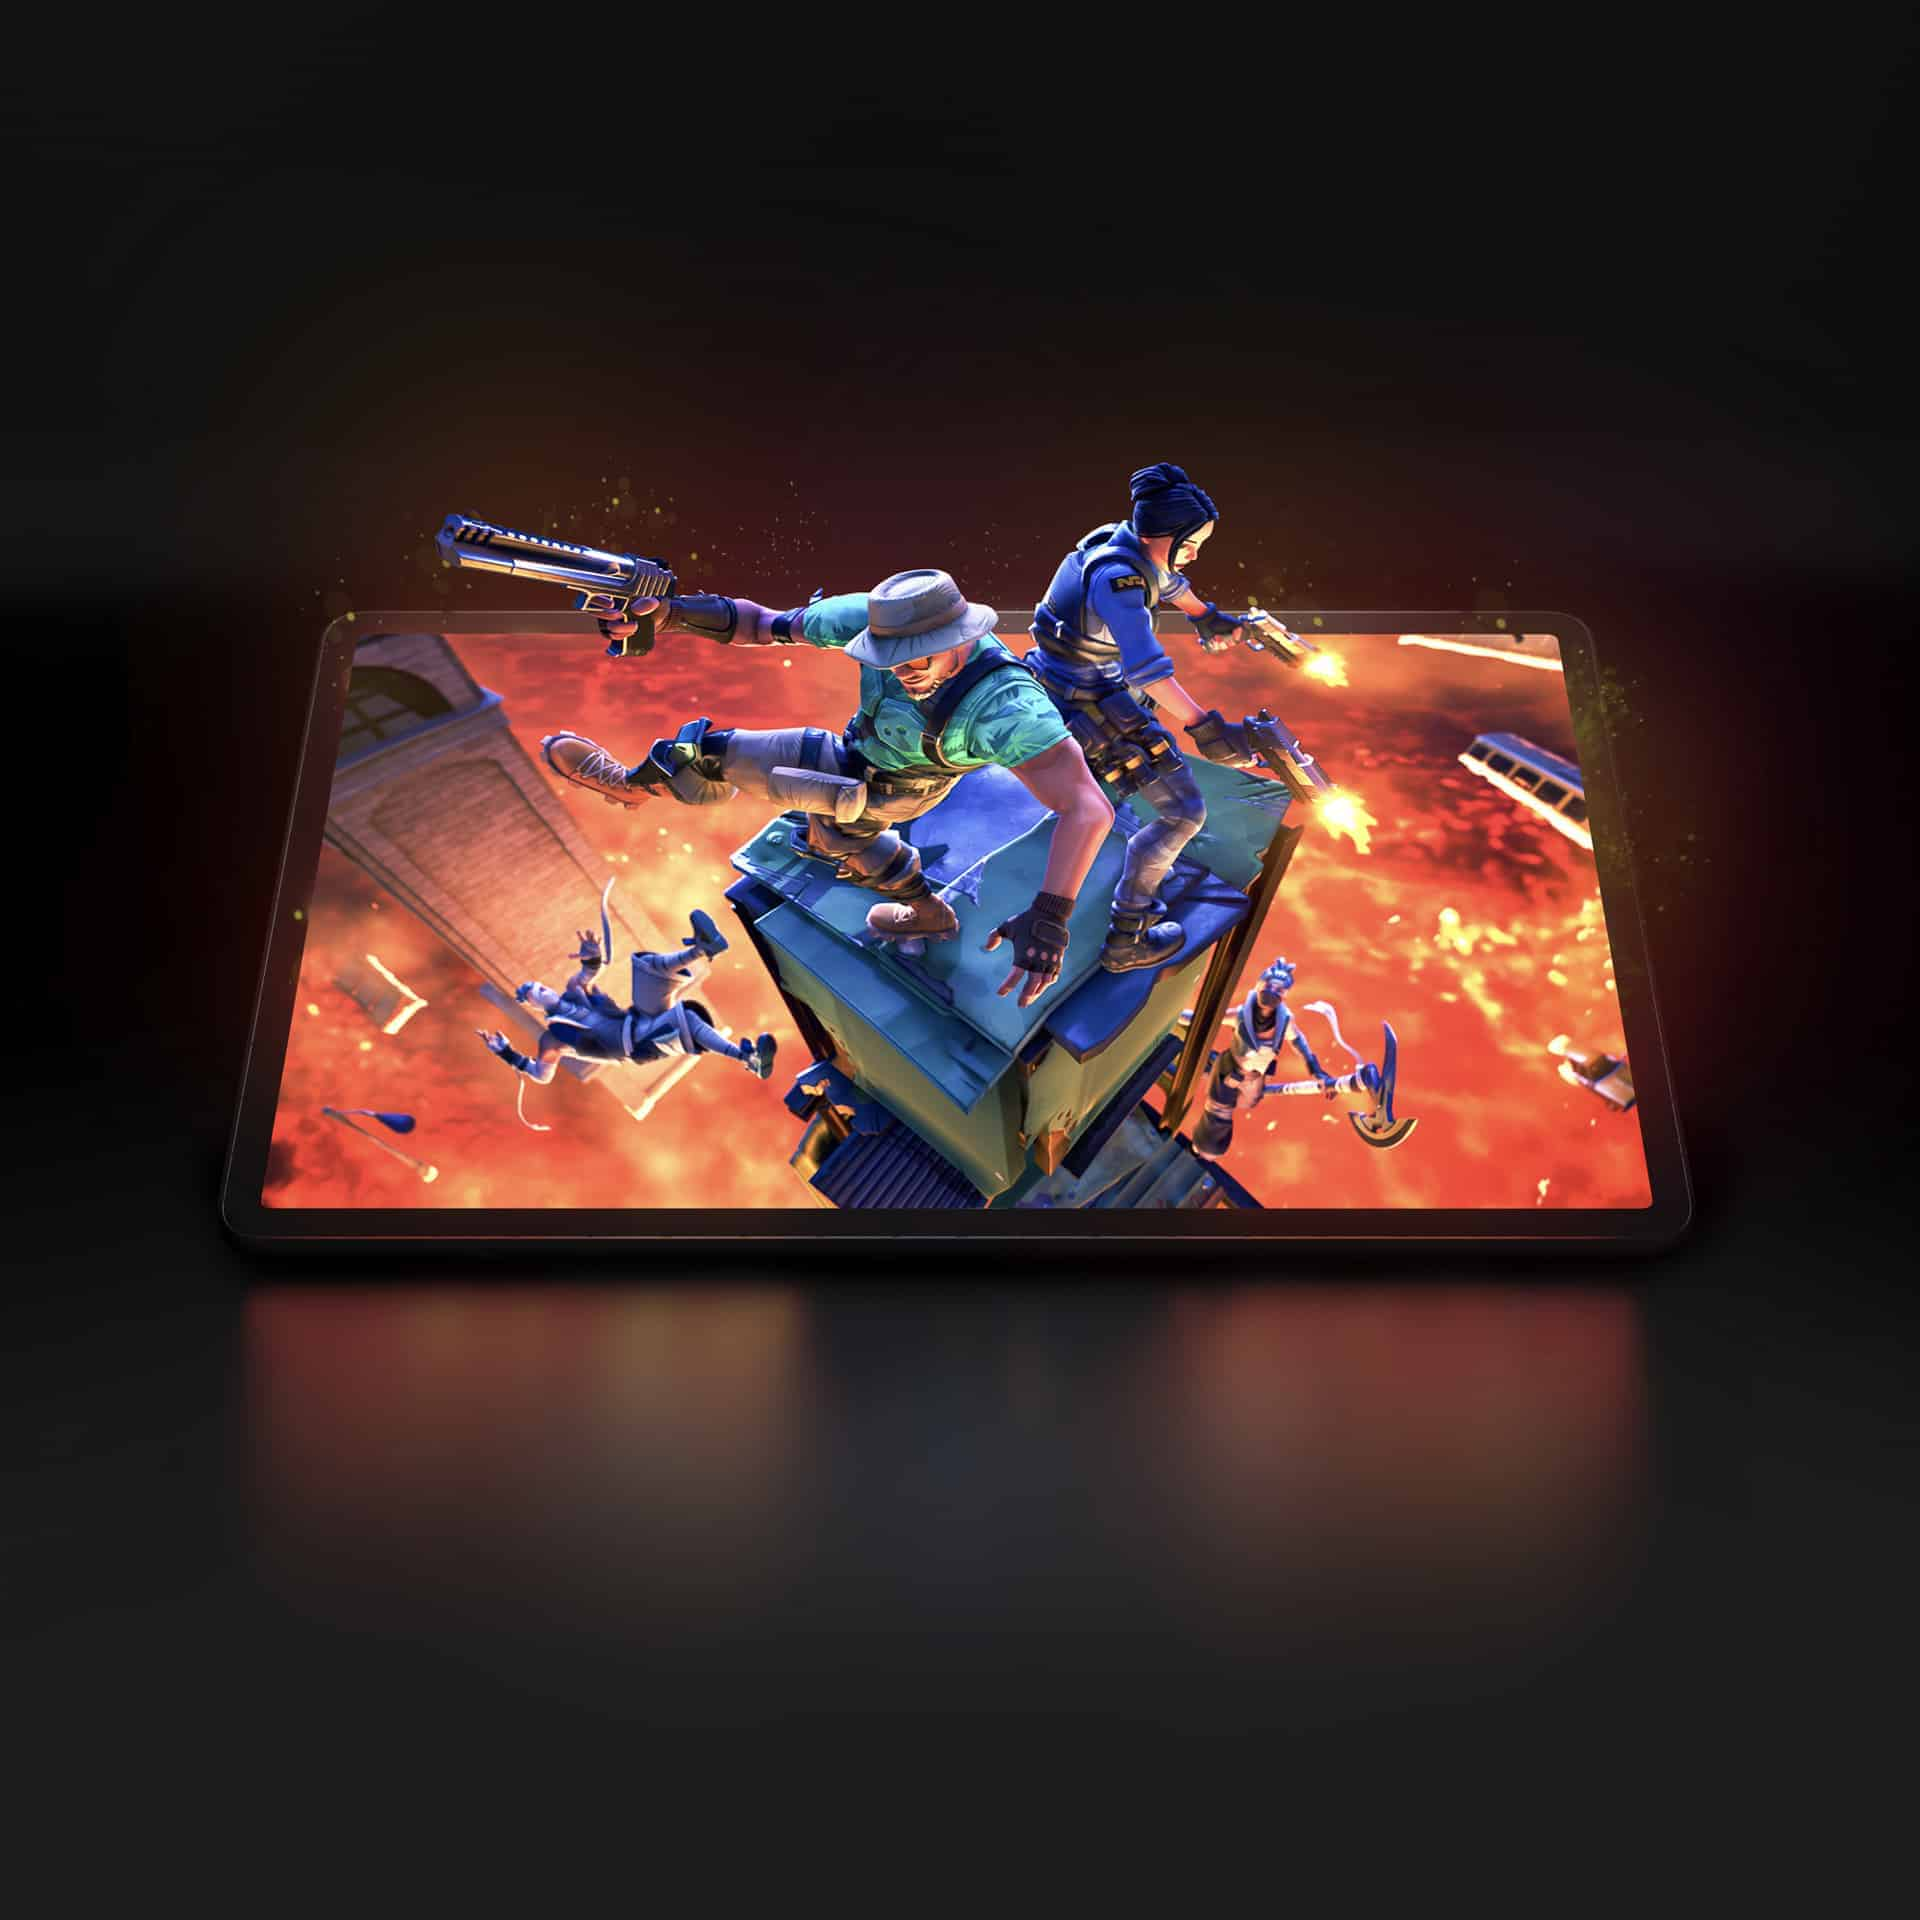 10 P11 Pro Hero Colourful Gaming Screen